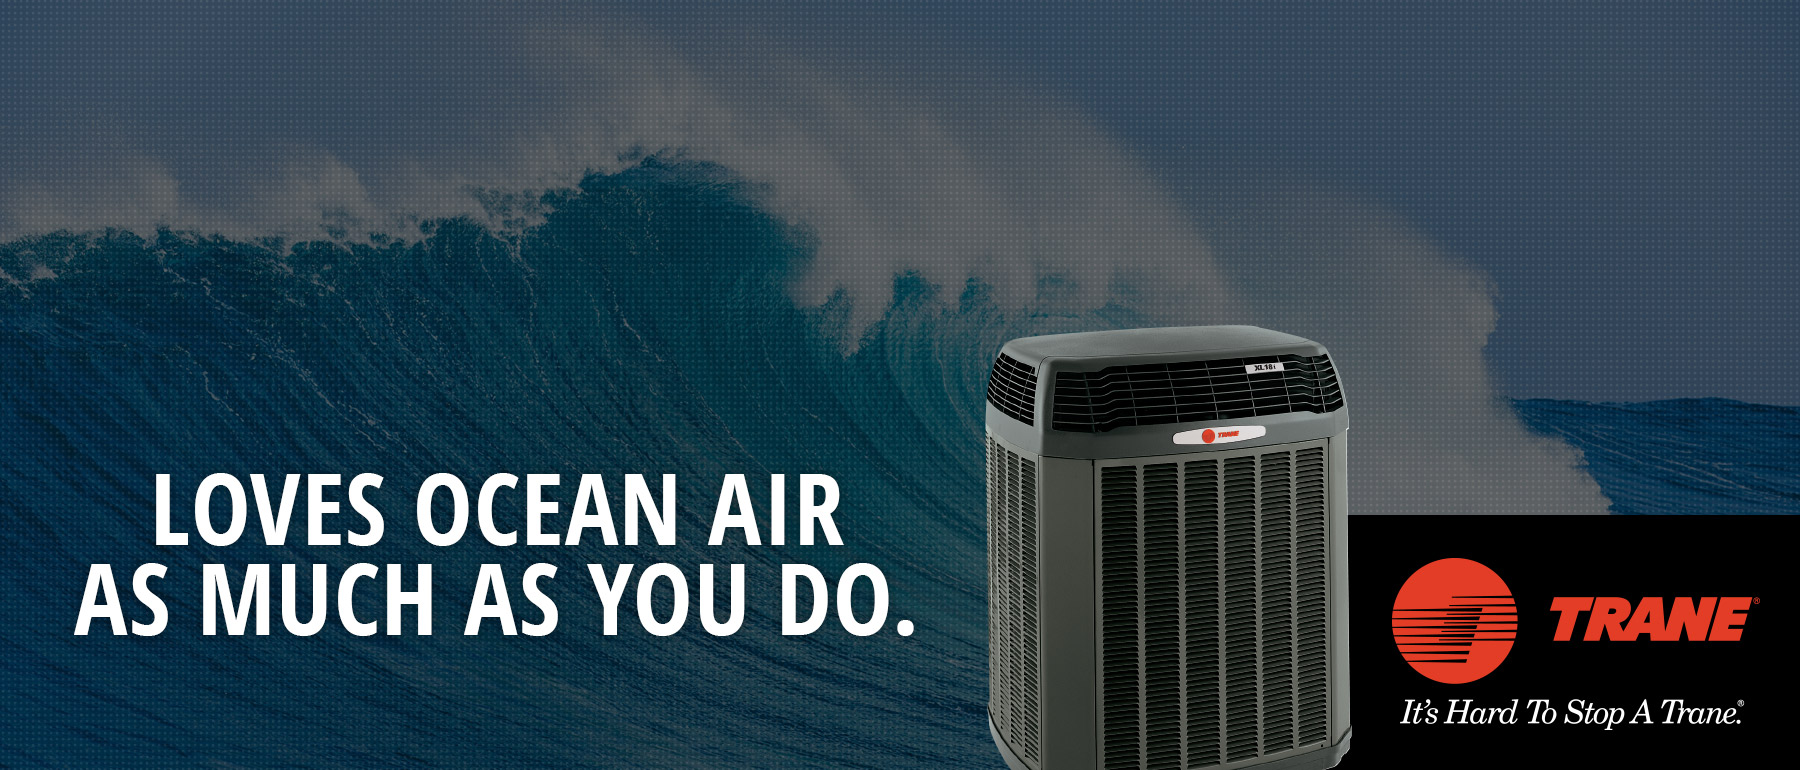 #AF2E1C Trane Ocean V4 Brand New 9001 Air Conditioning Installation Ocean Grove images with 1800x770 px on helpvideos.info - Air Conditioners, Air Coolers and more